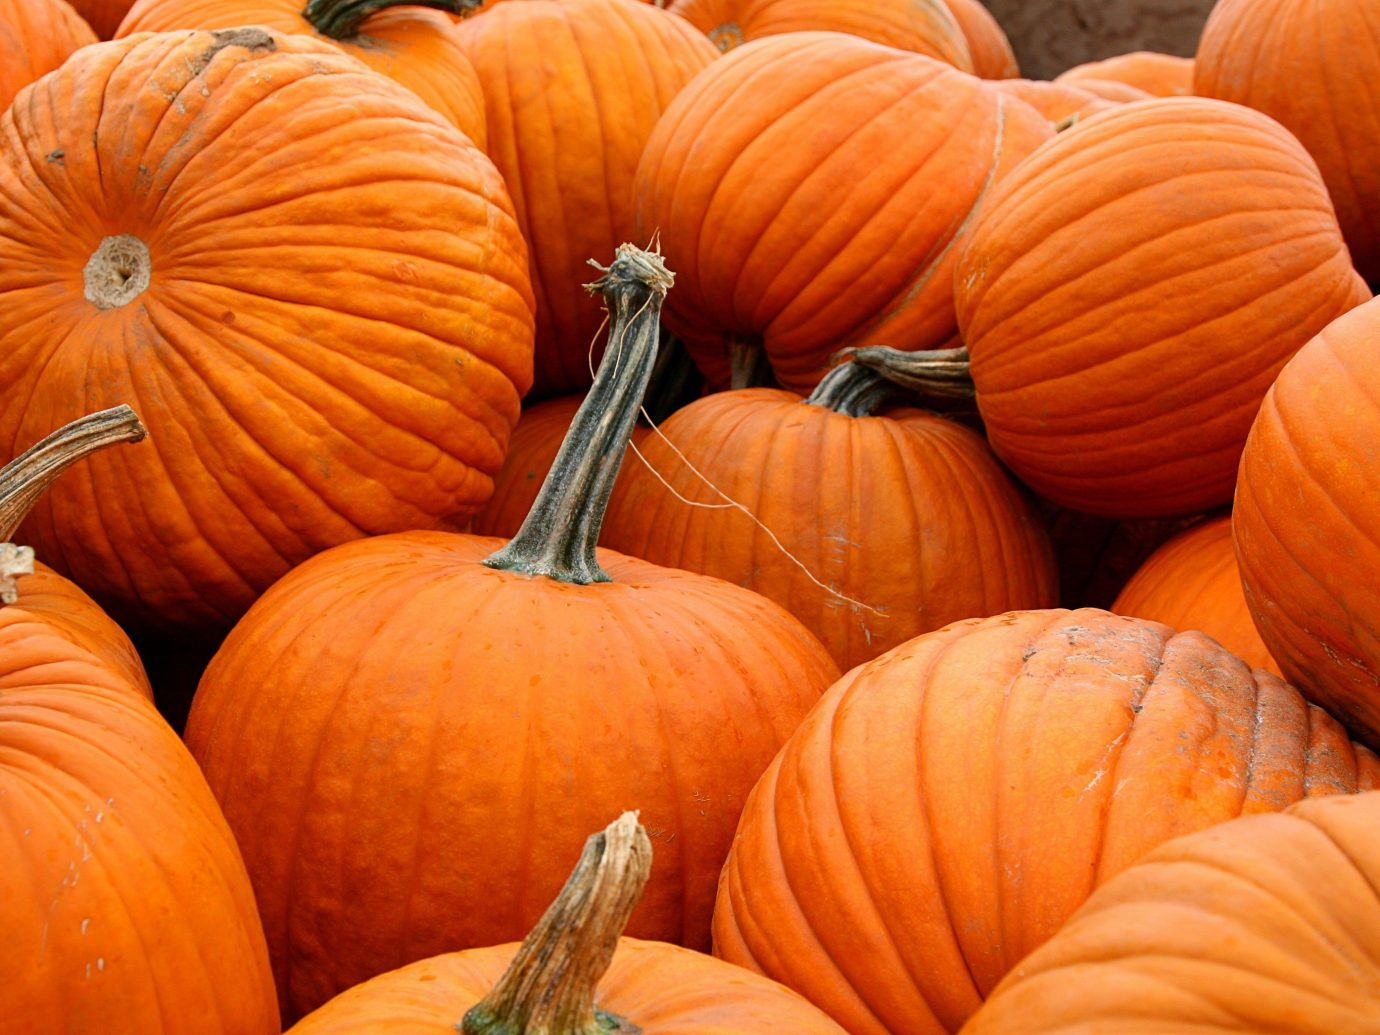 Trip Ideas squash fruit pumpkin winter squash calabaza carving autumn cucurbita produce gourd